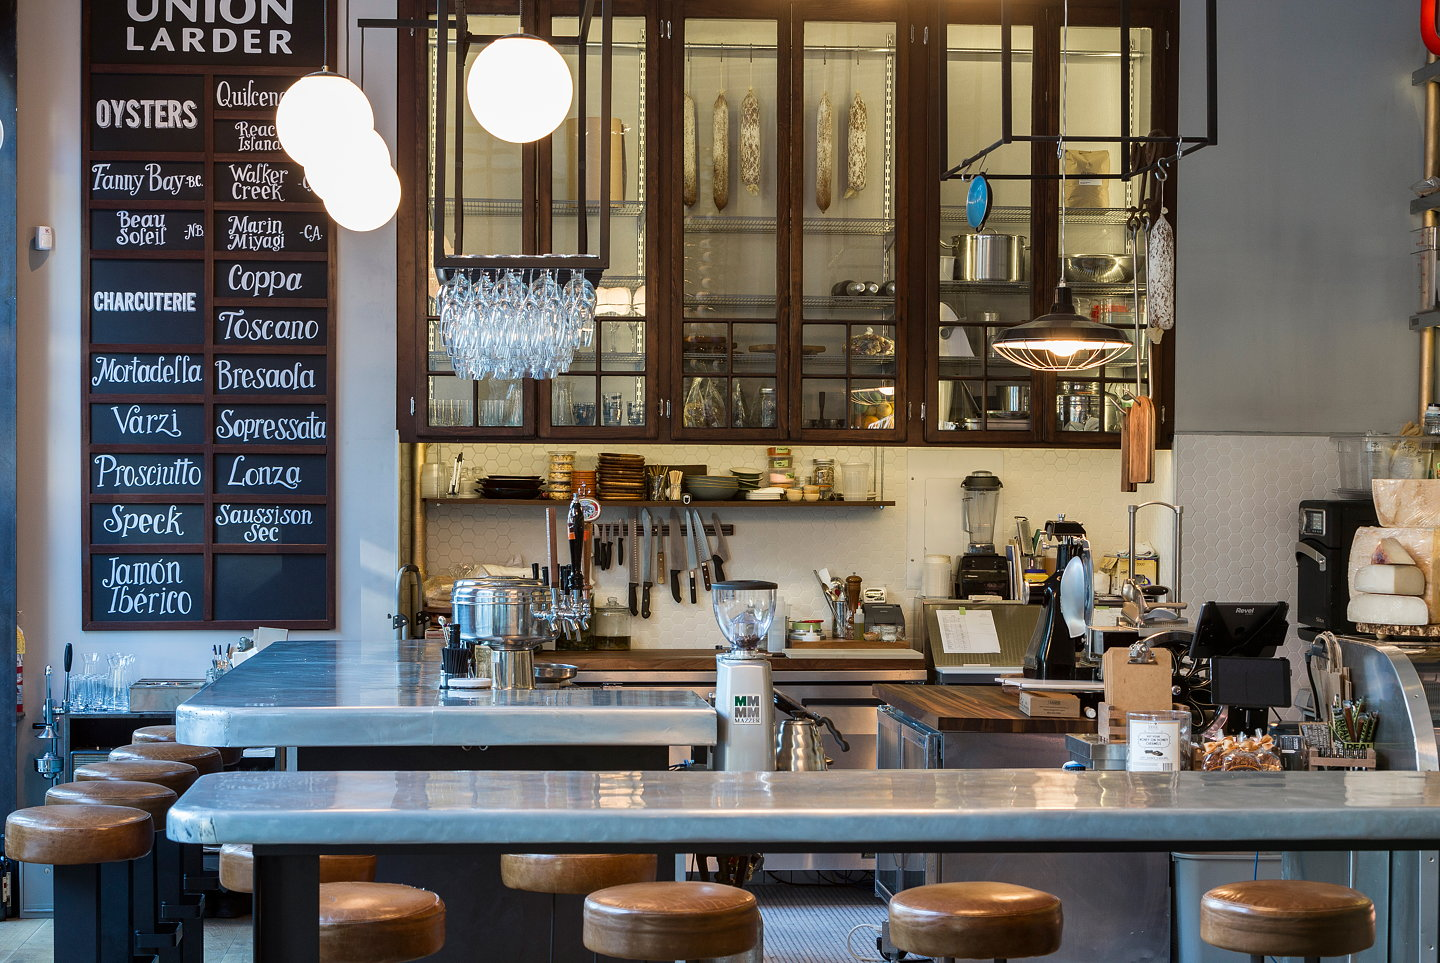 eight inc. brings refinement and design to union larder